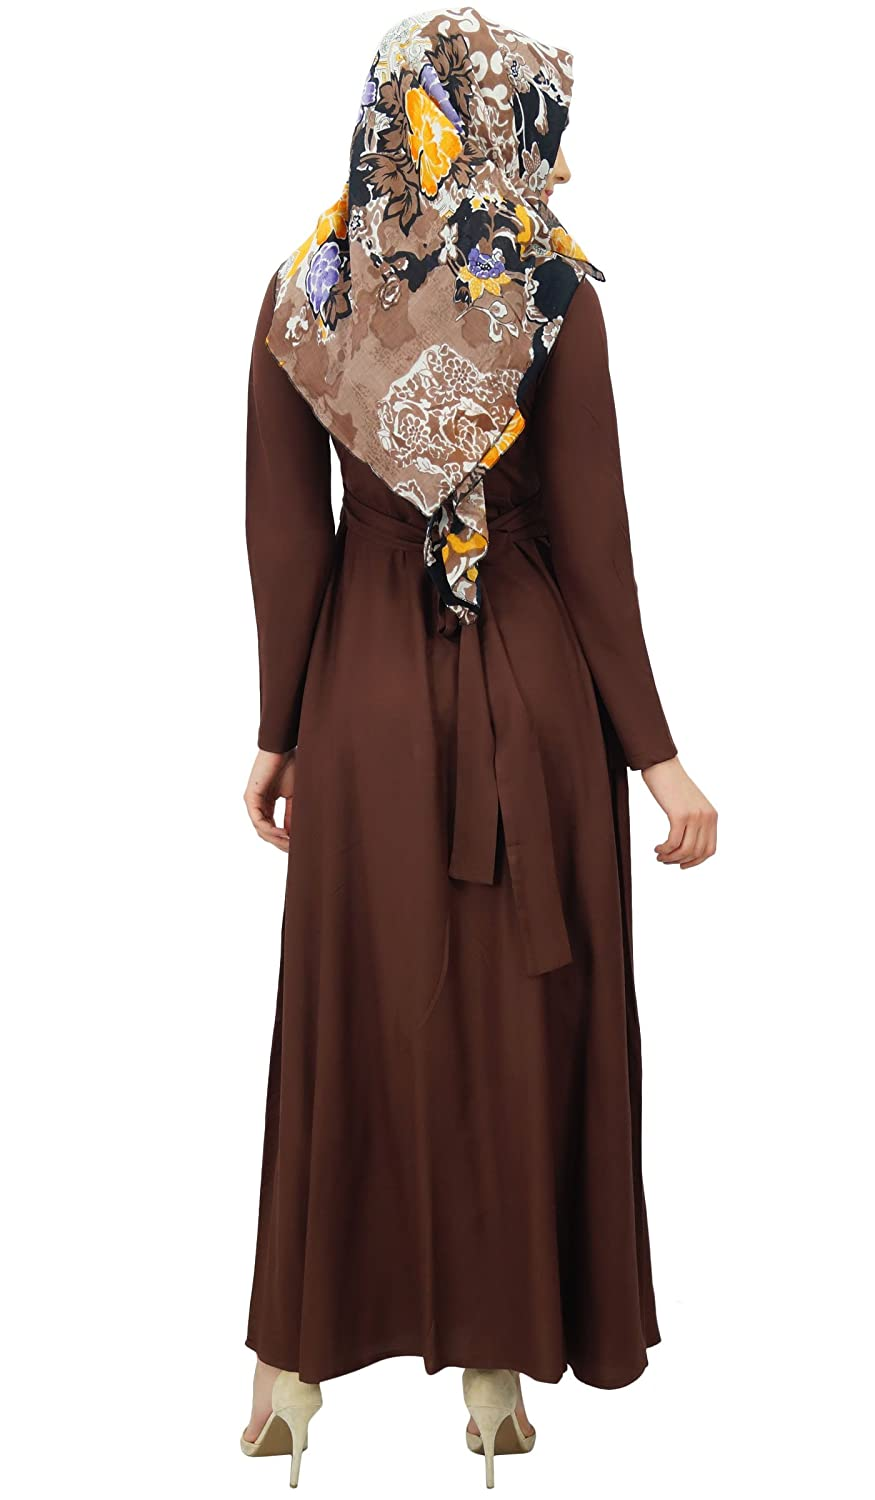 254e1cb3939 Bimba Women s Muslim Abaya Pleated Jilbab Islamic Long Dress With Printed  Hijab Scarf  Amazon.ca  Clothing   Accessories